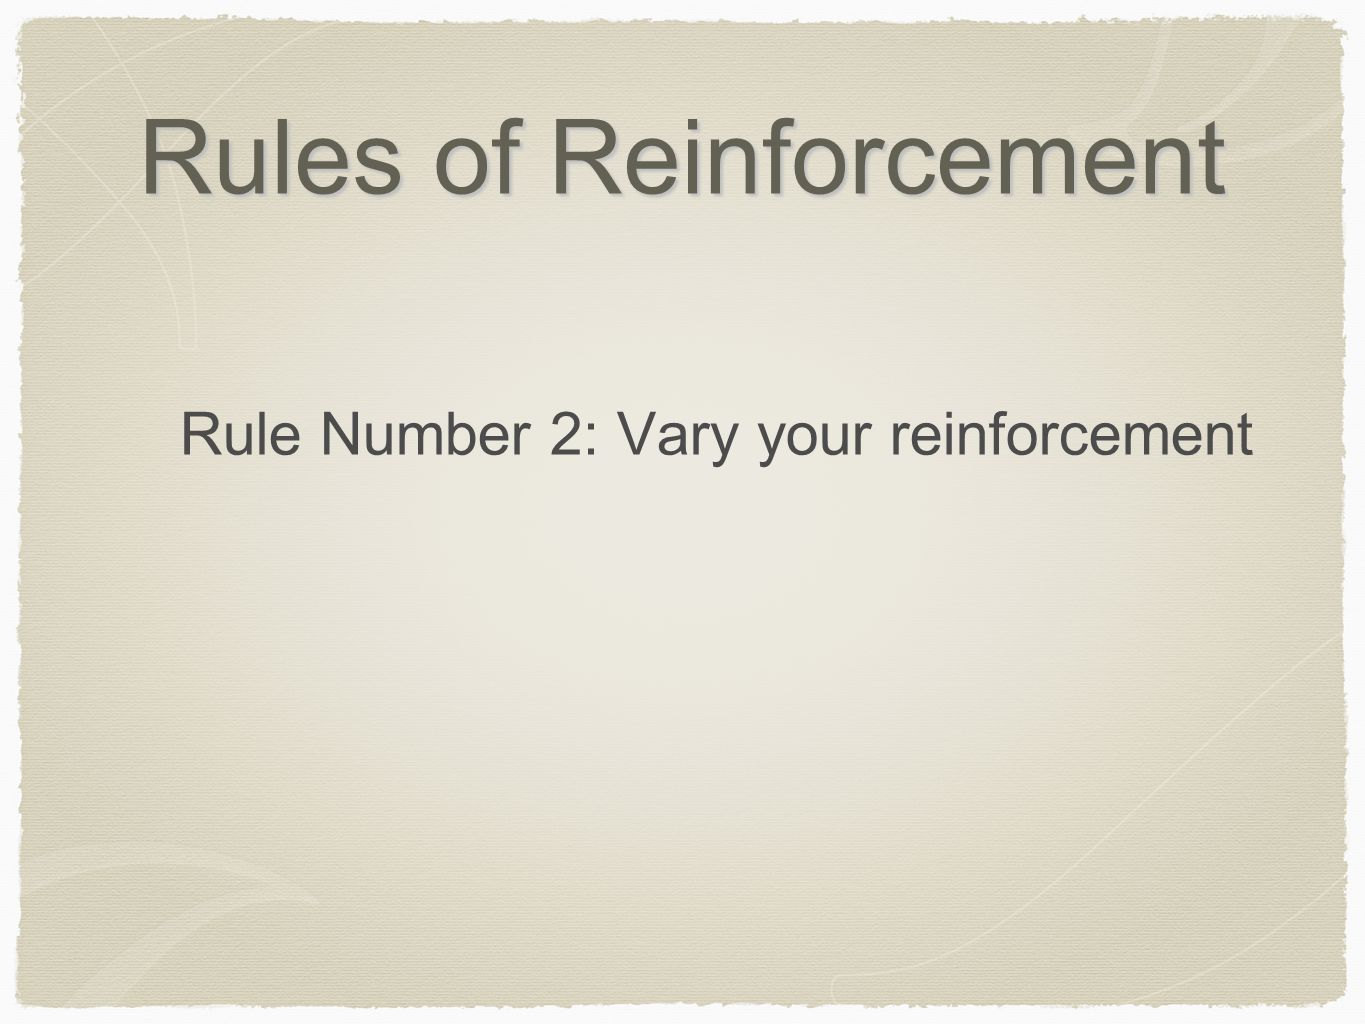 Rules of Reinforcement Rule Number 2: Vary your reinforcement